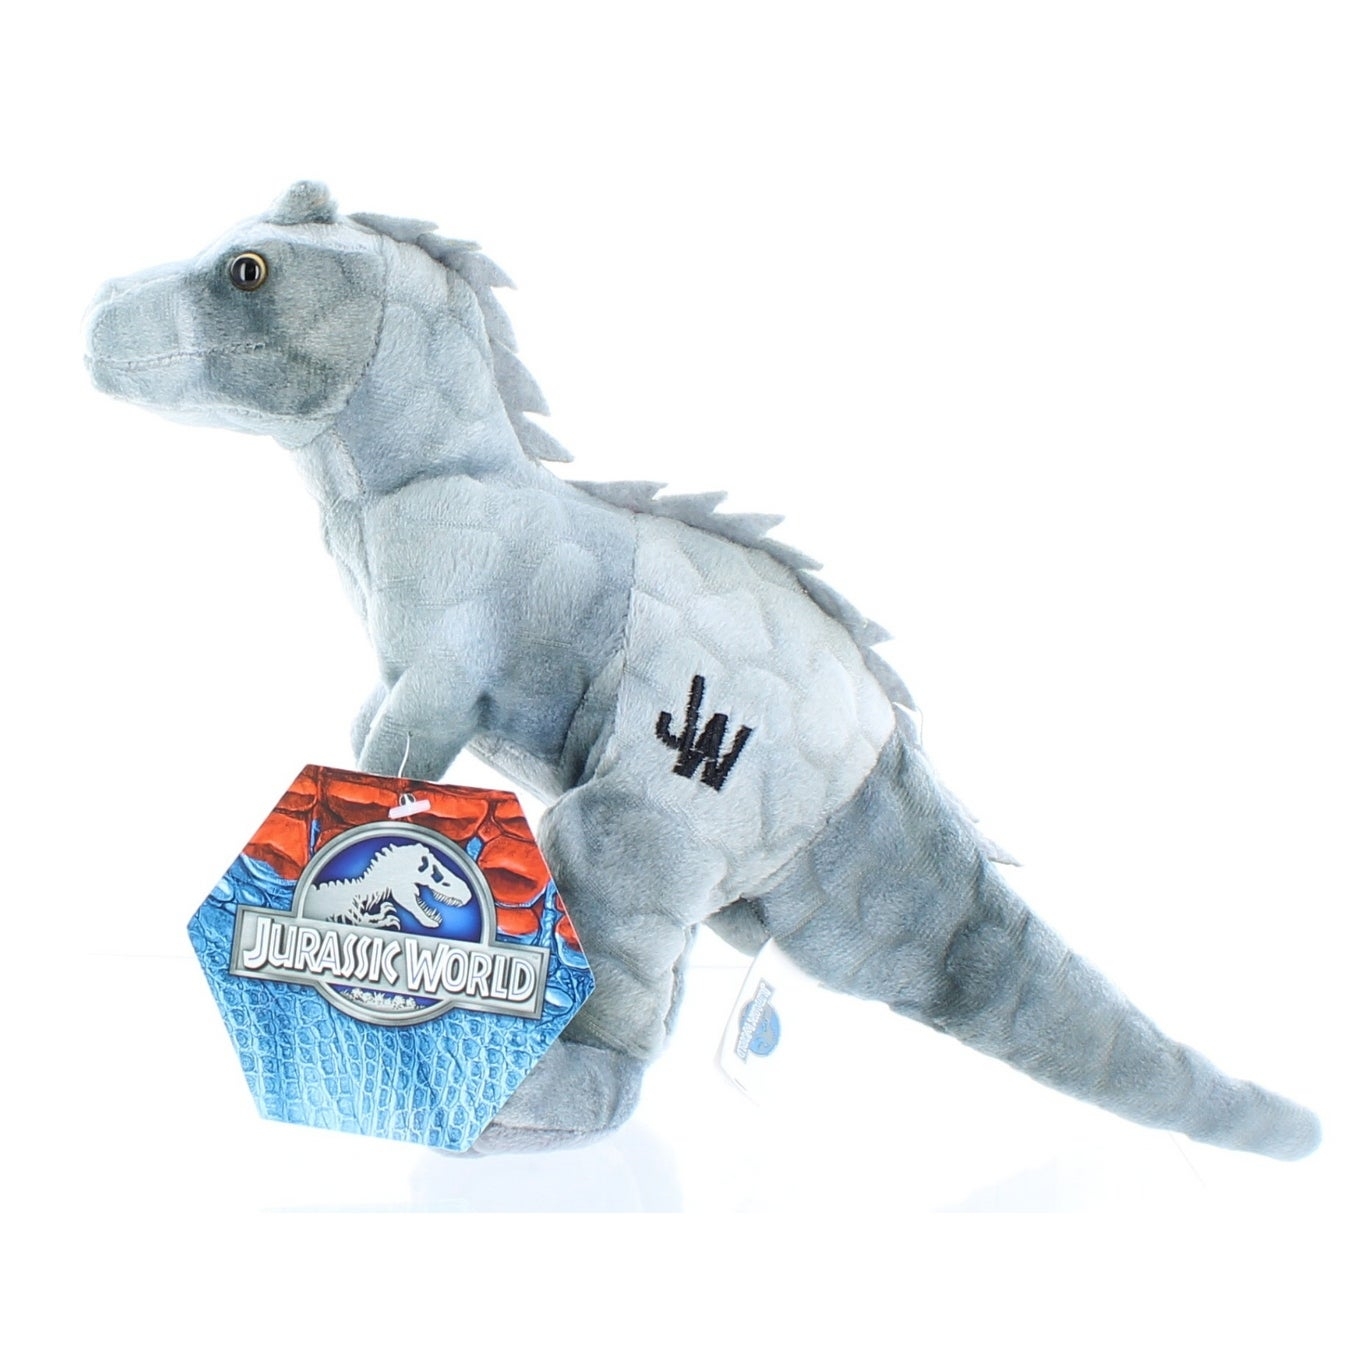 Aurora Monkey Stuffed Animal, Shop Black Friday Deals On Jurassic World 7 Plush Gray Indominus Rex Multi Overstock 13674096